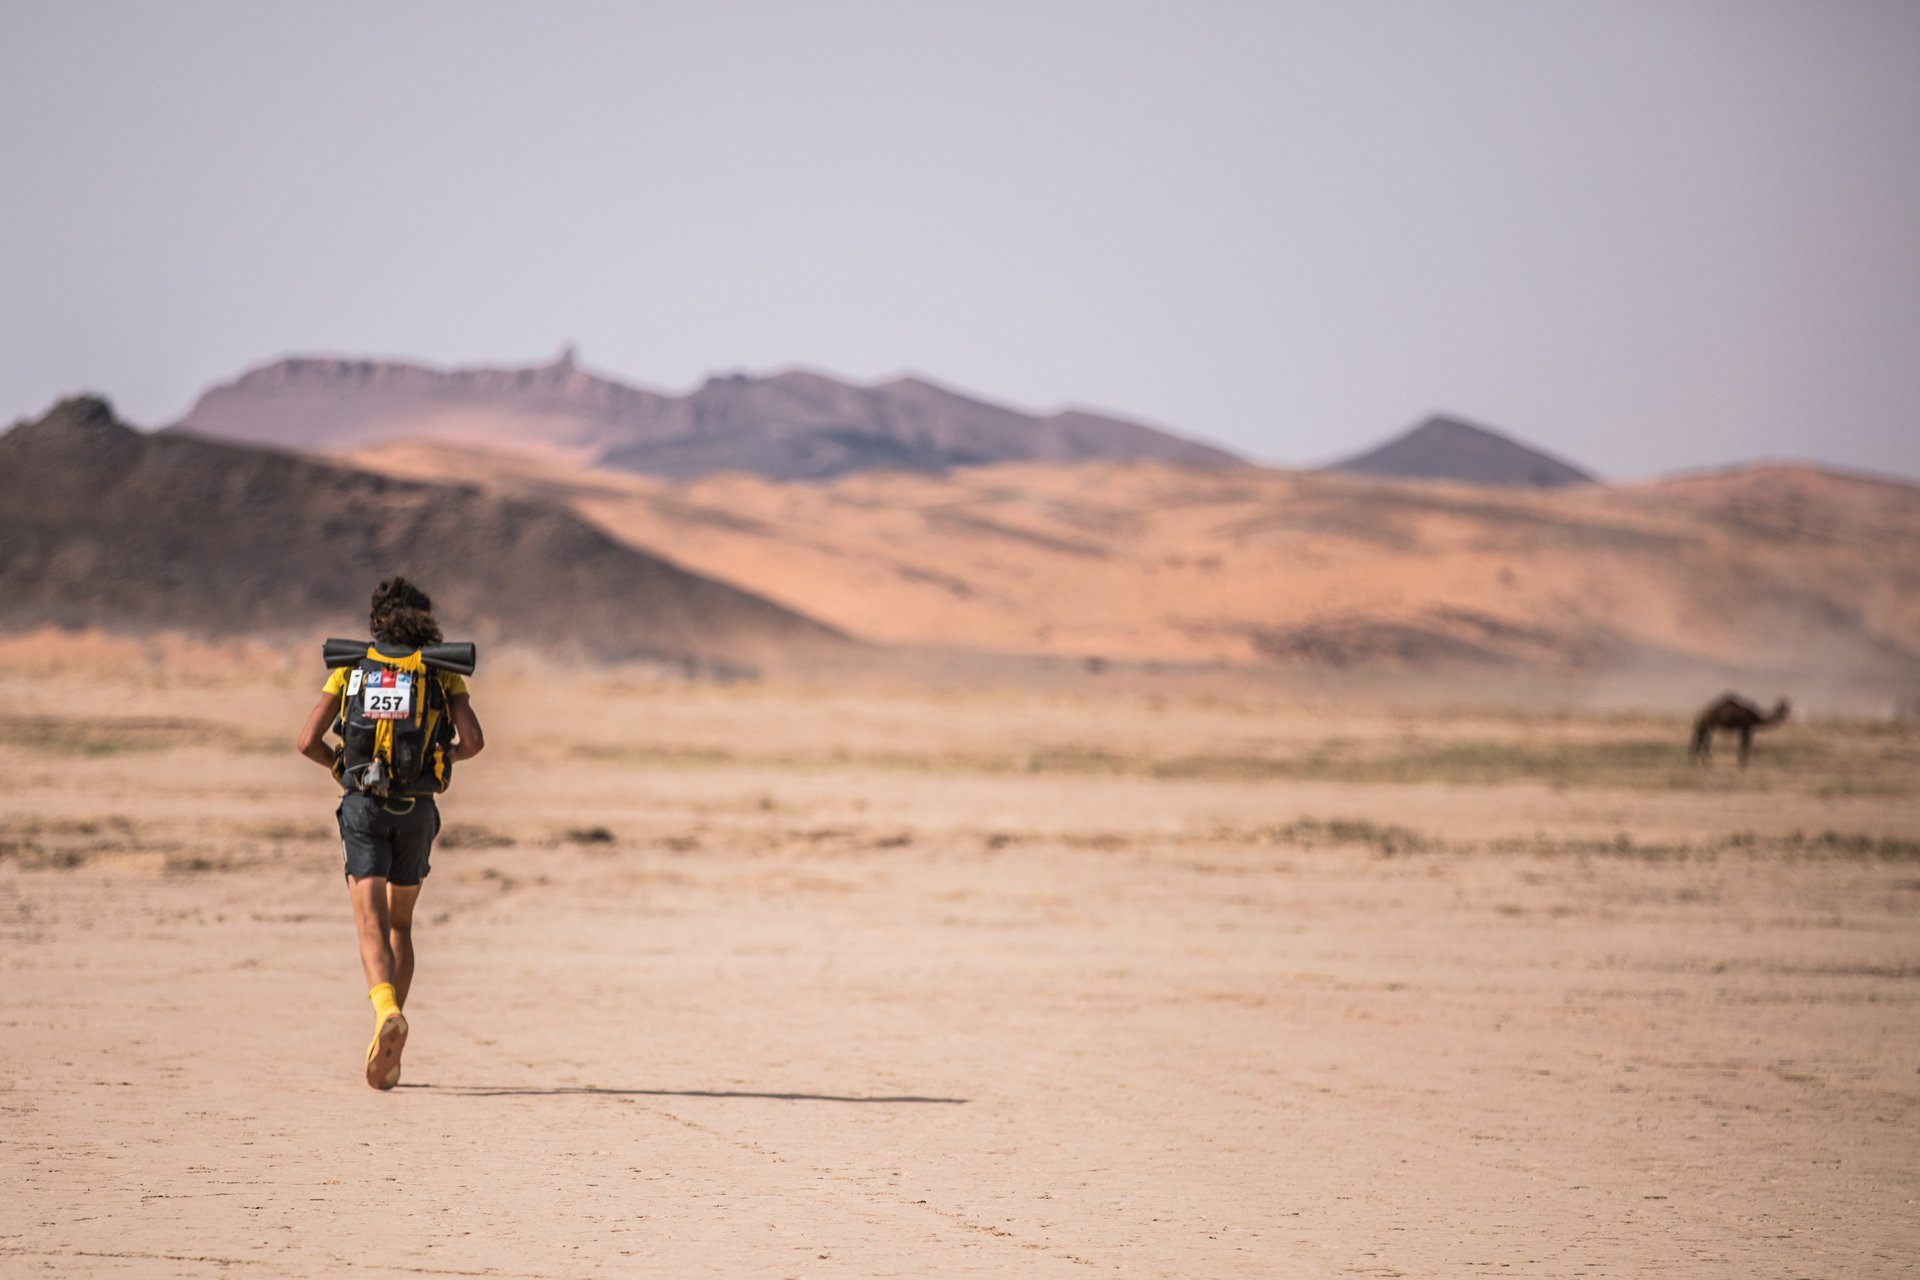 Best time for Marathon Des Sables (MDS) 2019